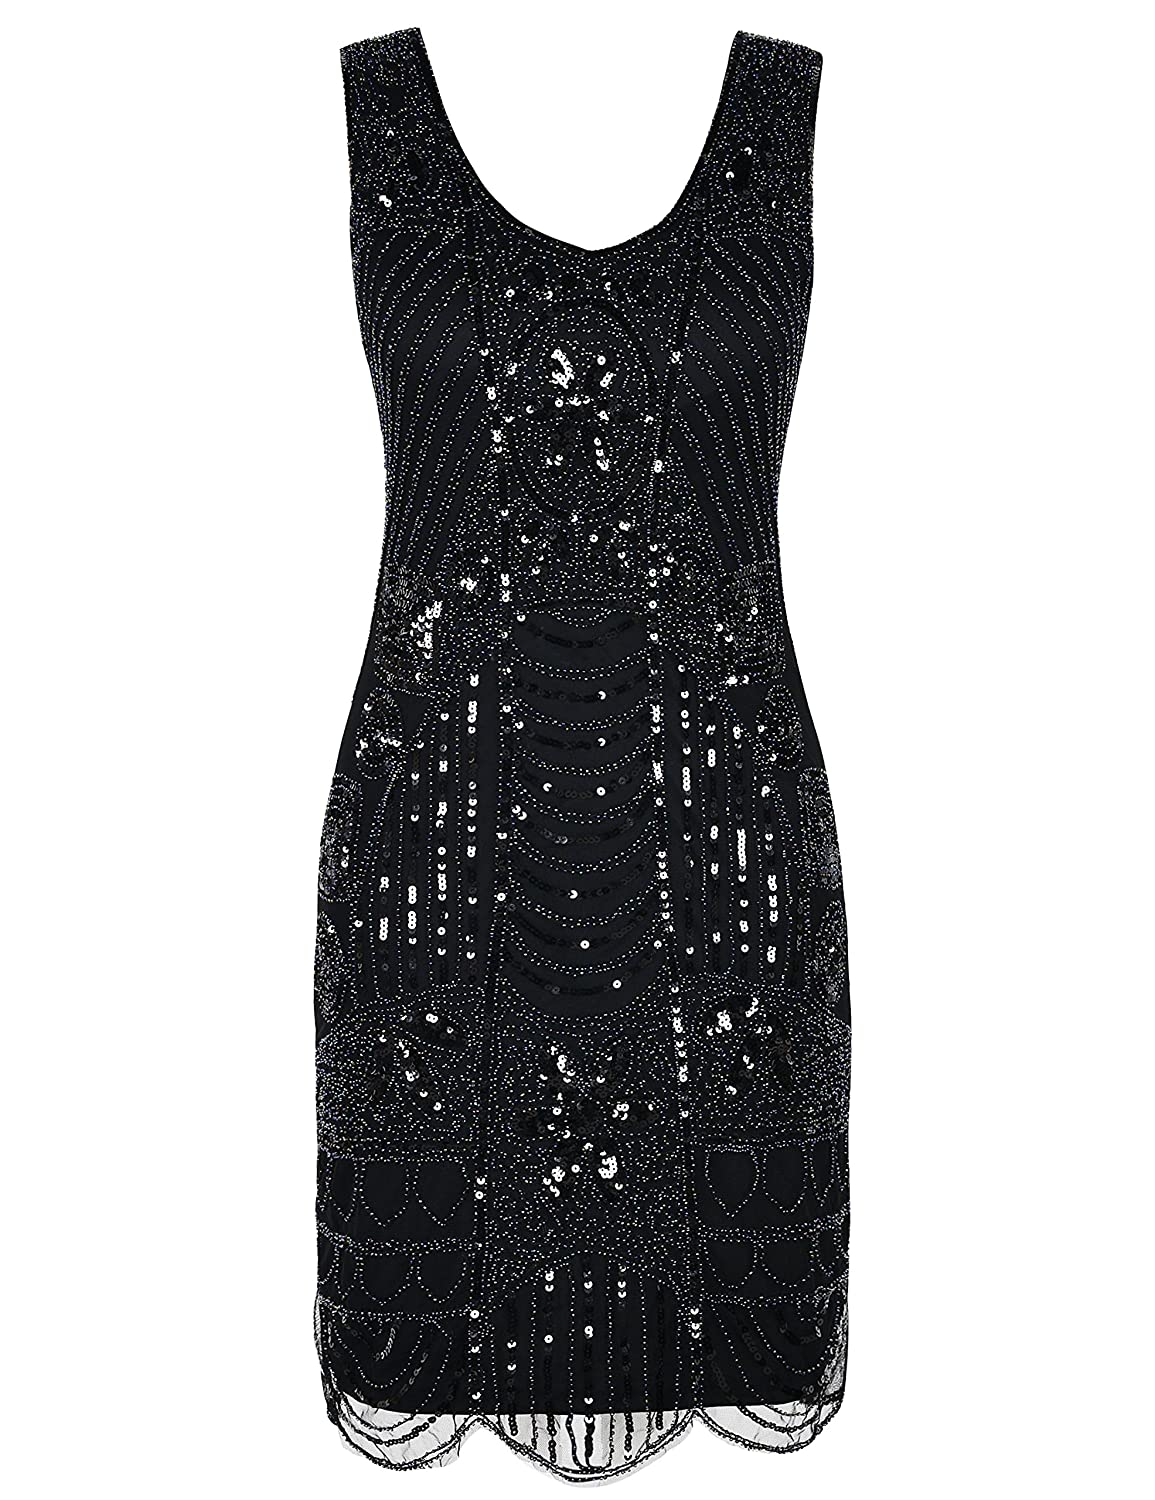 1920s Costumes: Flapper, Great Gatsby, Gangster Girl PrettyGuide Womens 1920s Flapper Dress Gatsby Sequin Scalloped Inspired Cocktail Dress $39.99 AT vintagedancer.com